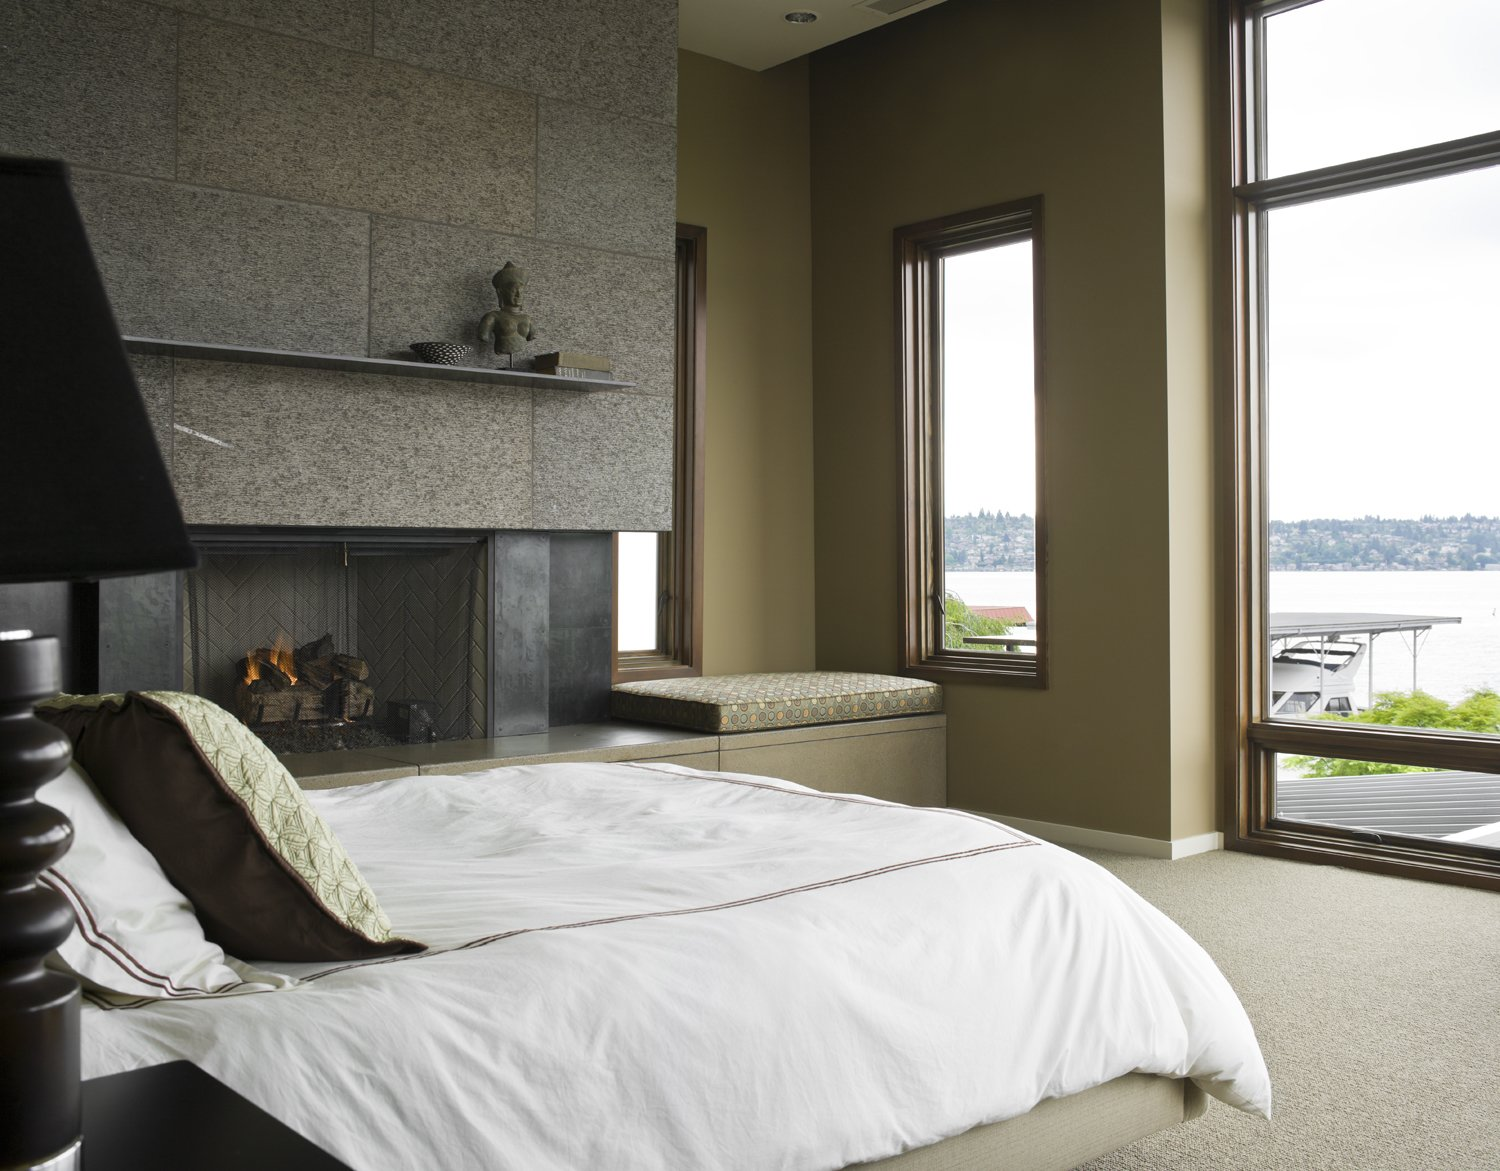 Mountain View Residence Tagged: Bedroom, Bed, Bench, and Carpet Floor.  Mountain View Residence by SkB Architects